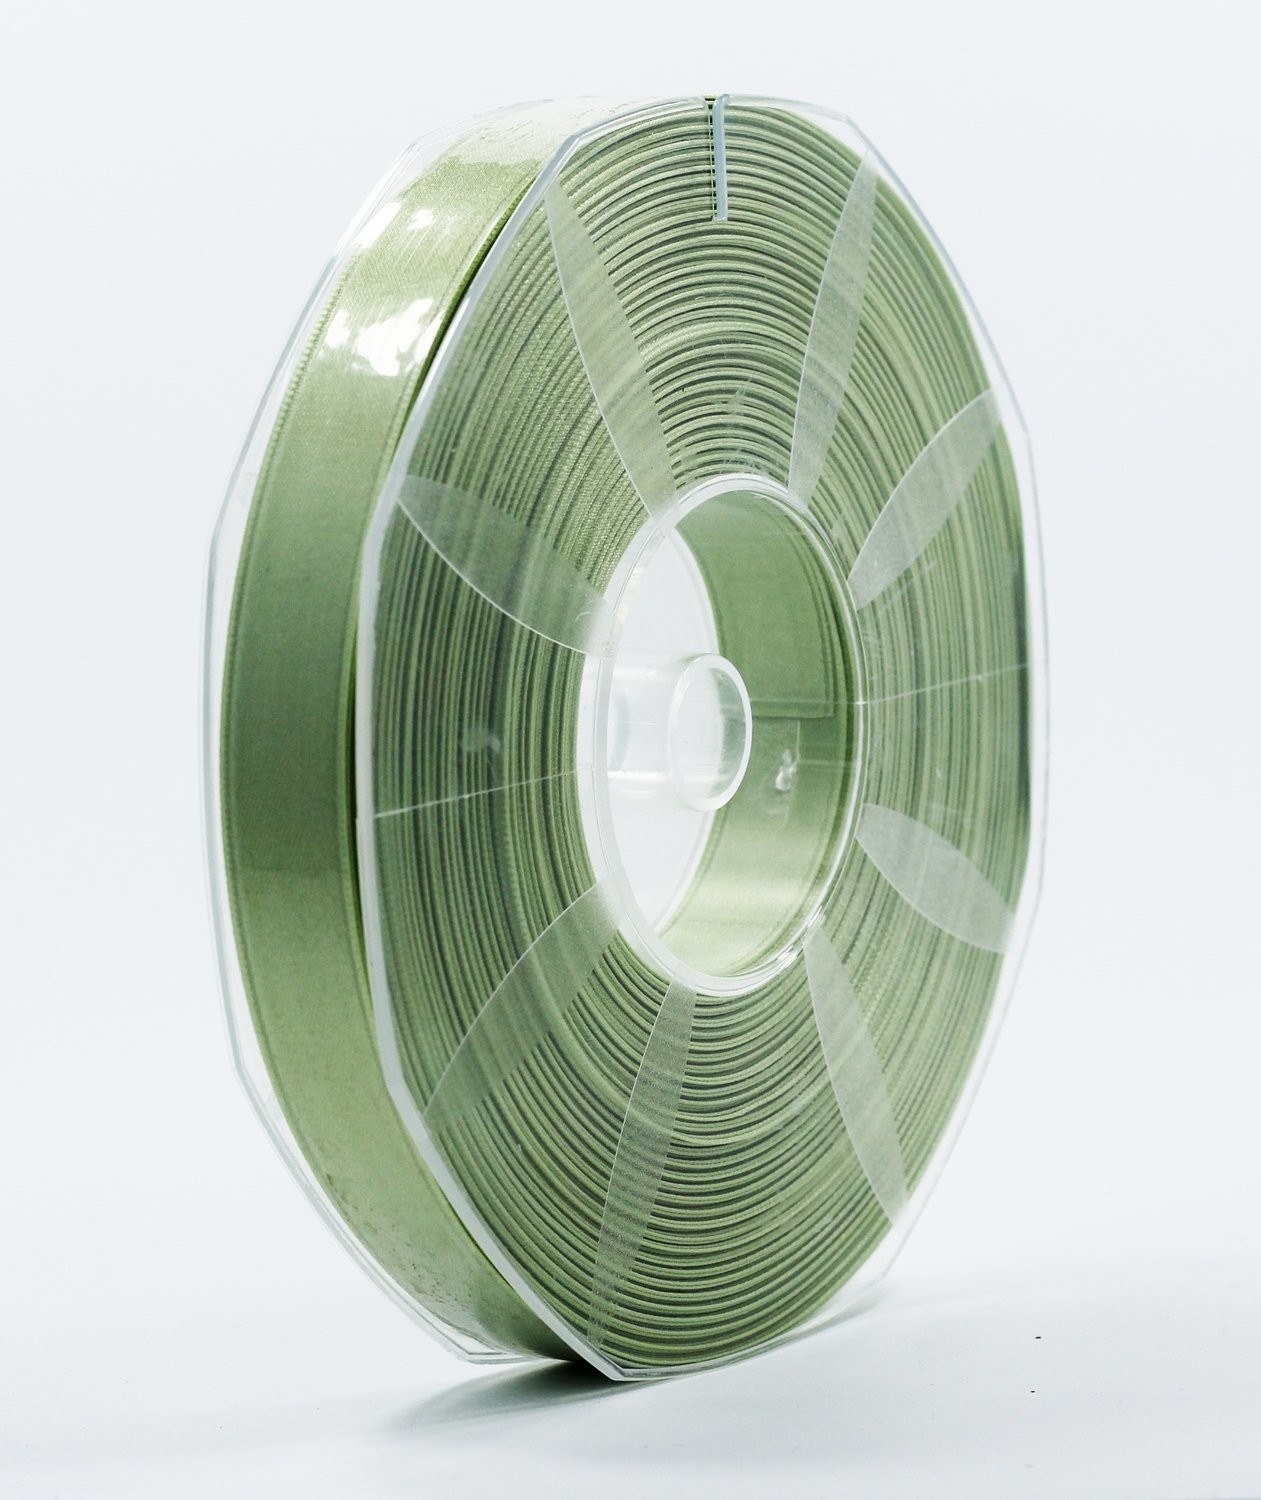 Furlanis nastro di raso verde medio colore 7 mm.16 Mt.50